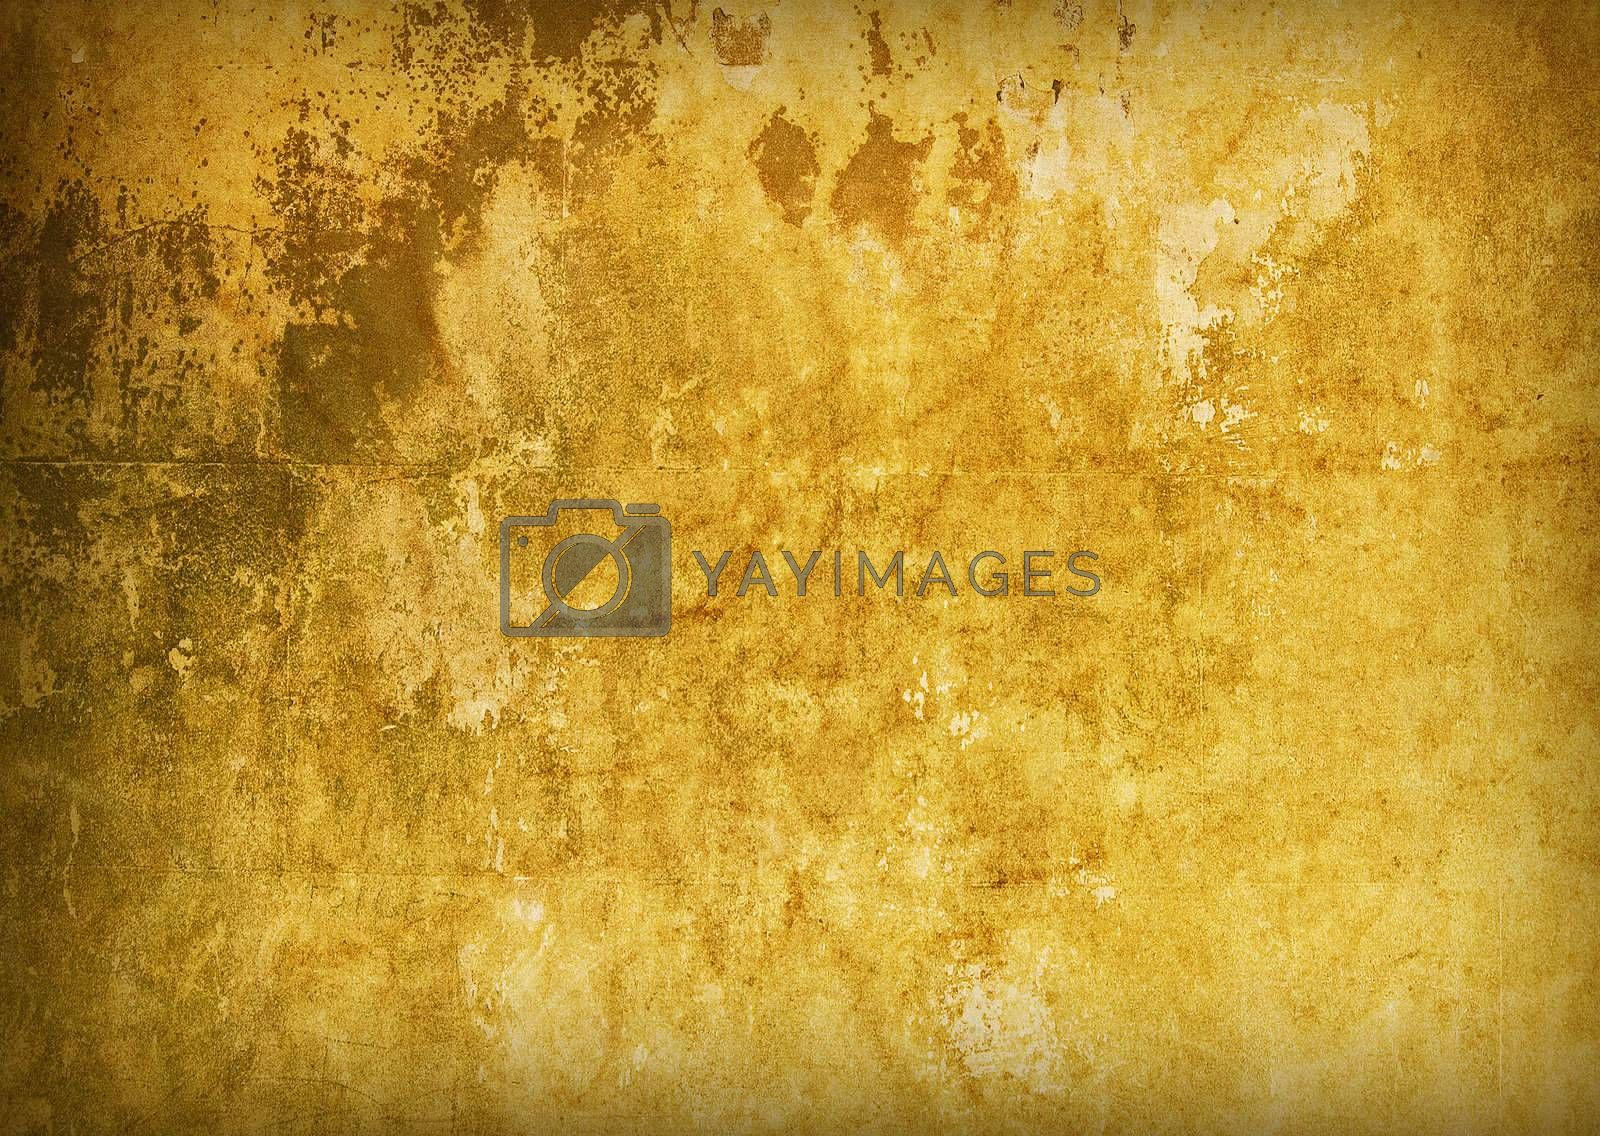 Golden grungy background by tuku